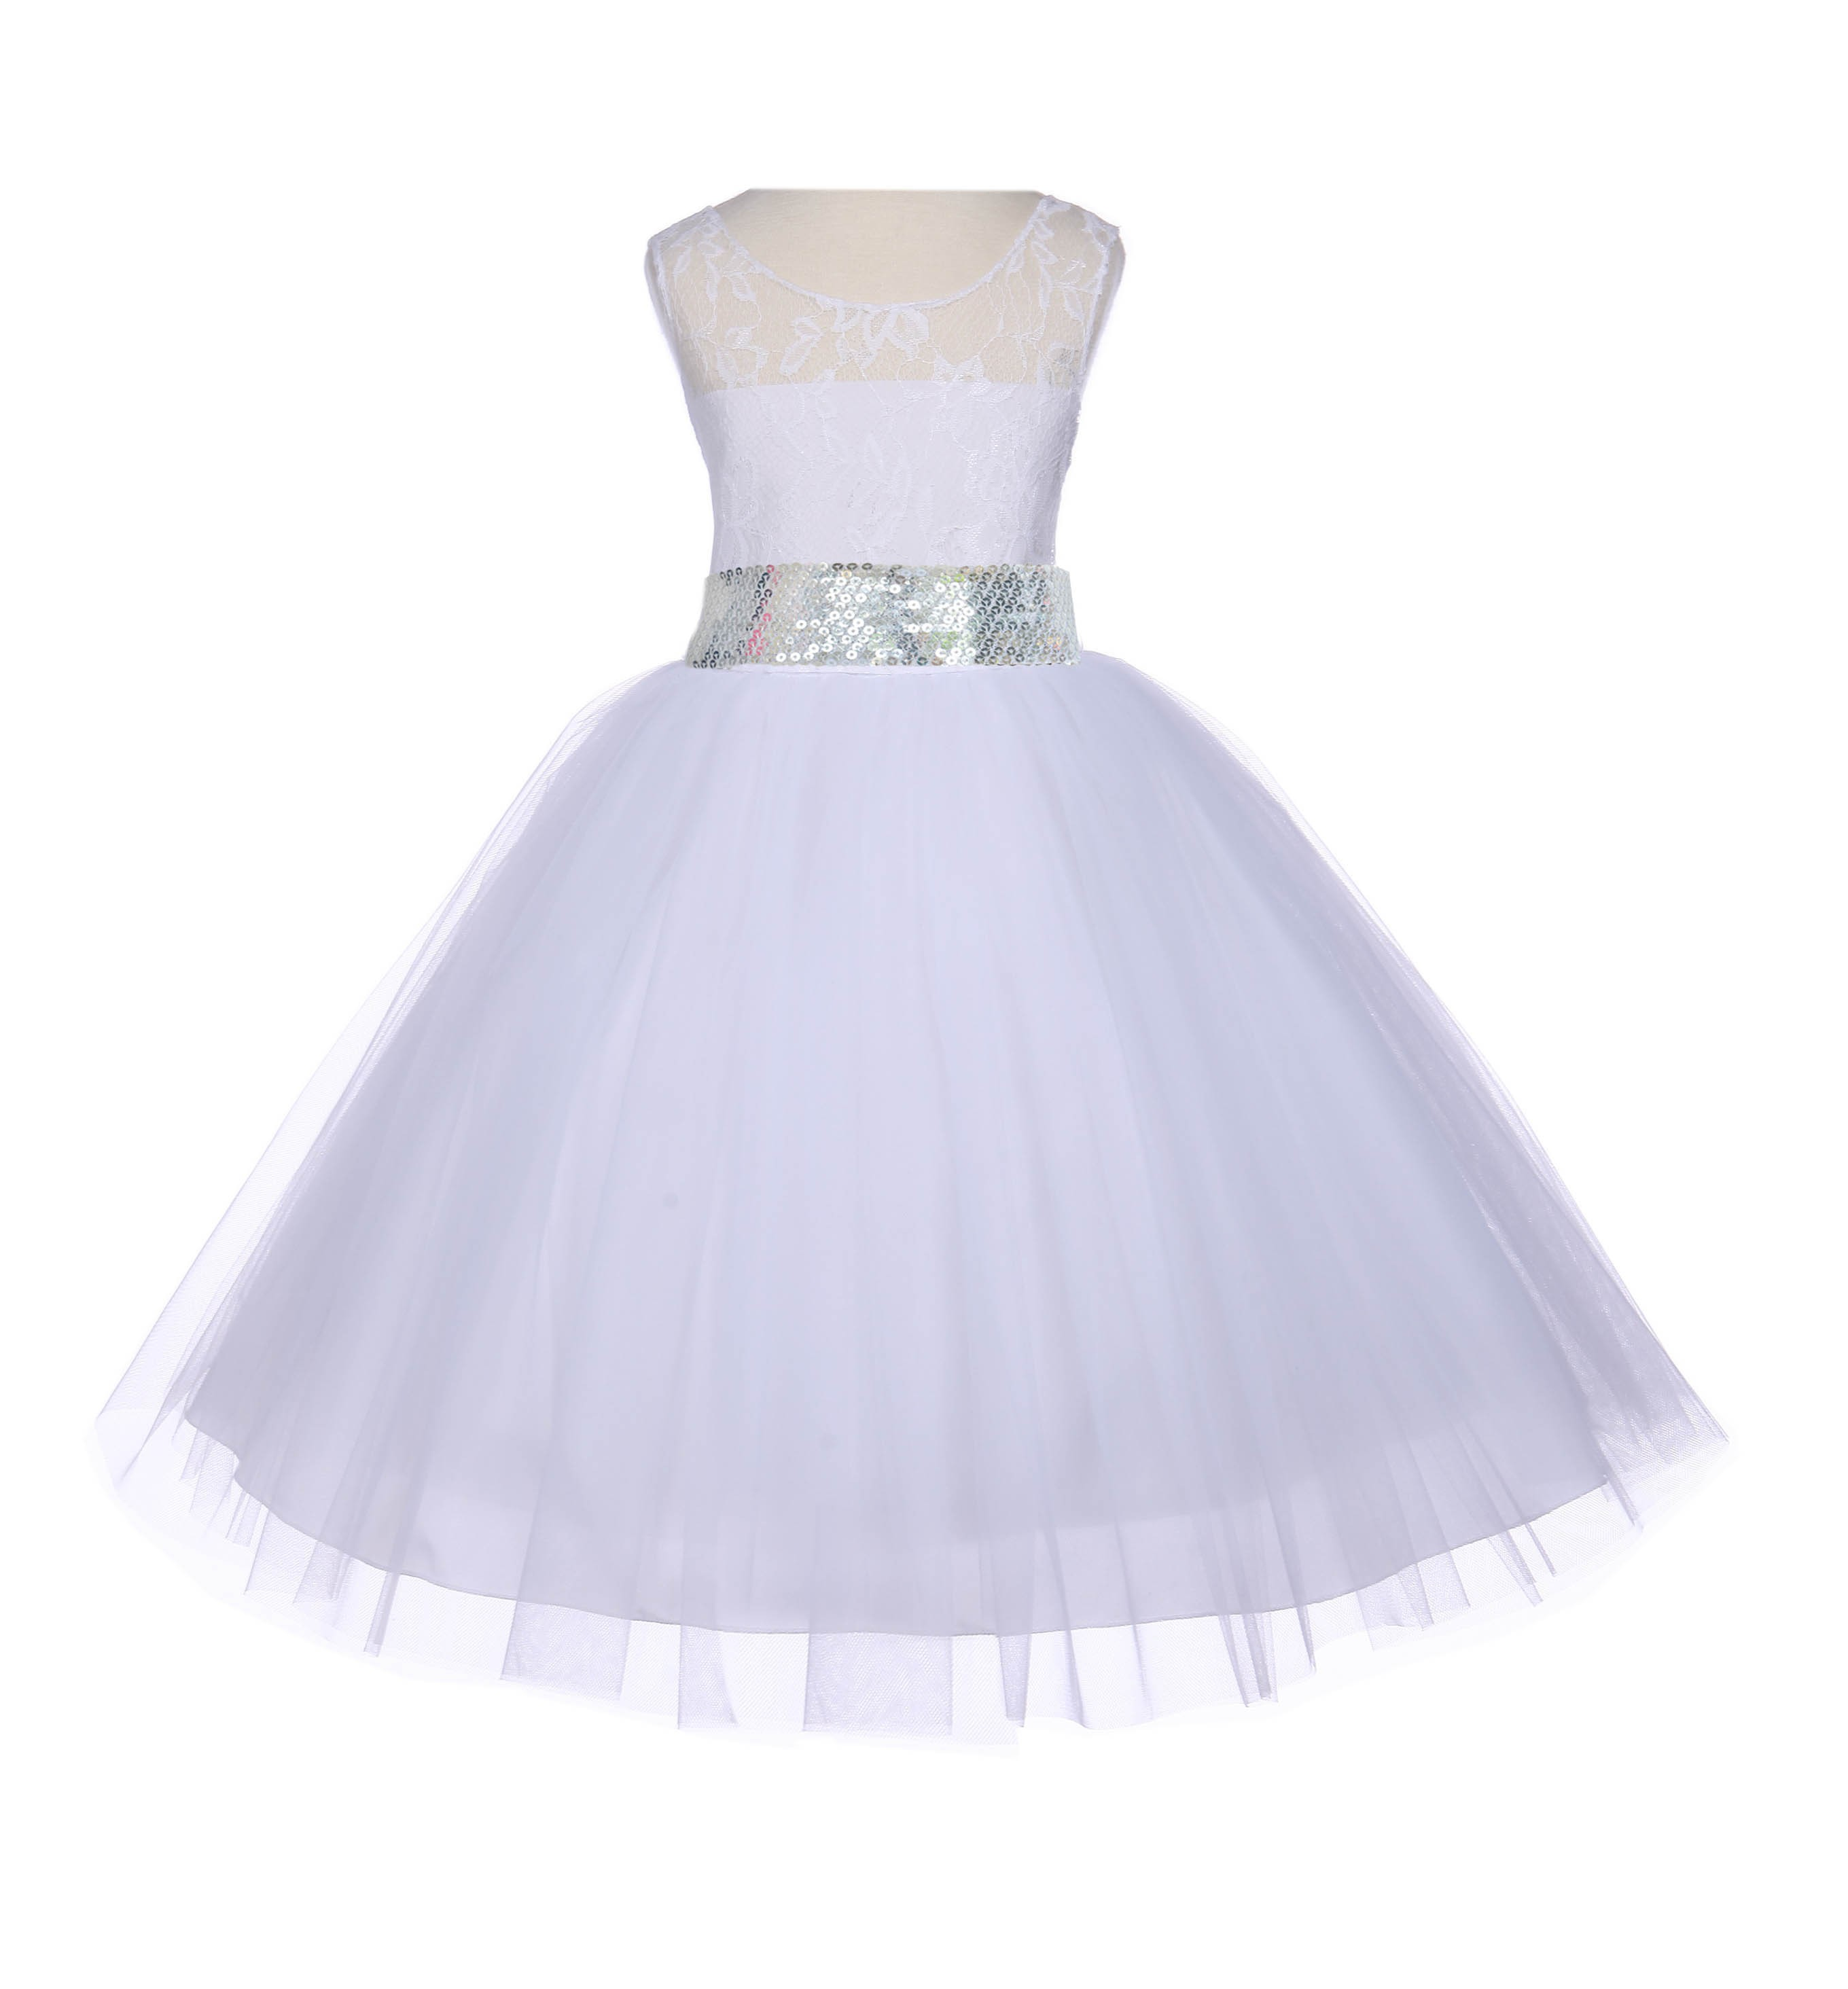 White floral lace bodice tulle silver sequin flower girl dress 153mh white floral lace bodice tulle silver sequin flower girl dress 153mh mightylinksfo